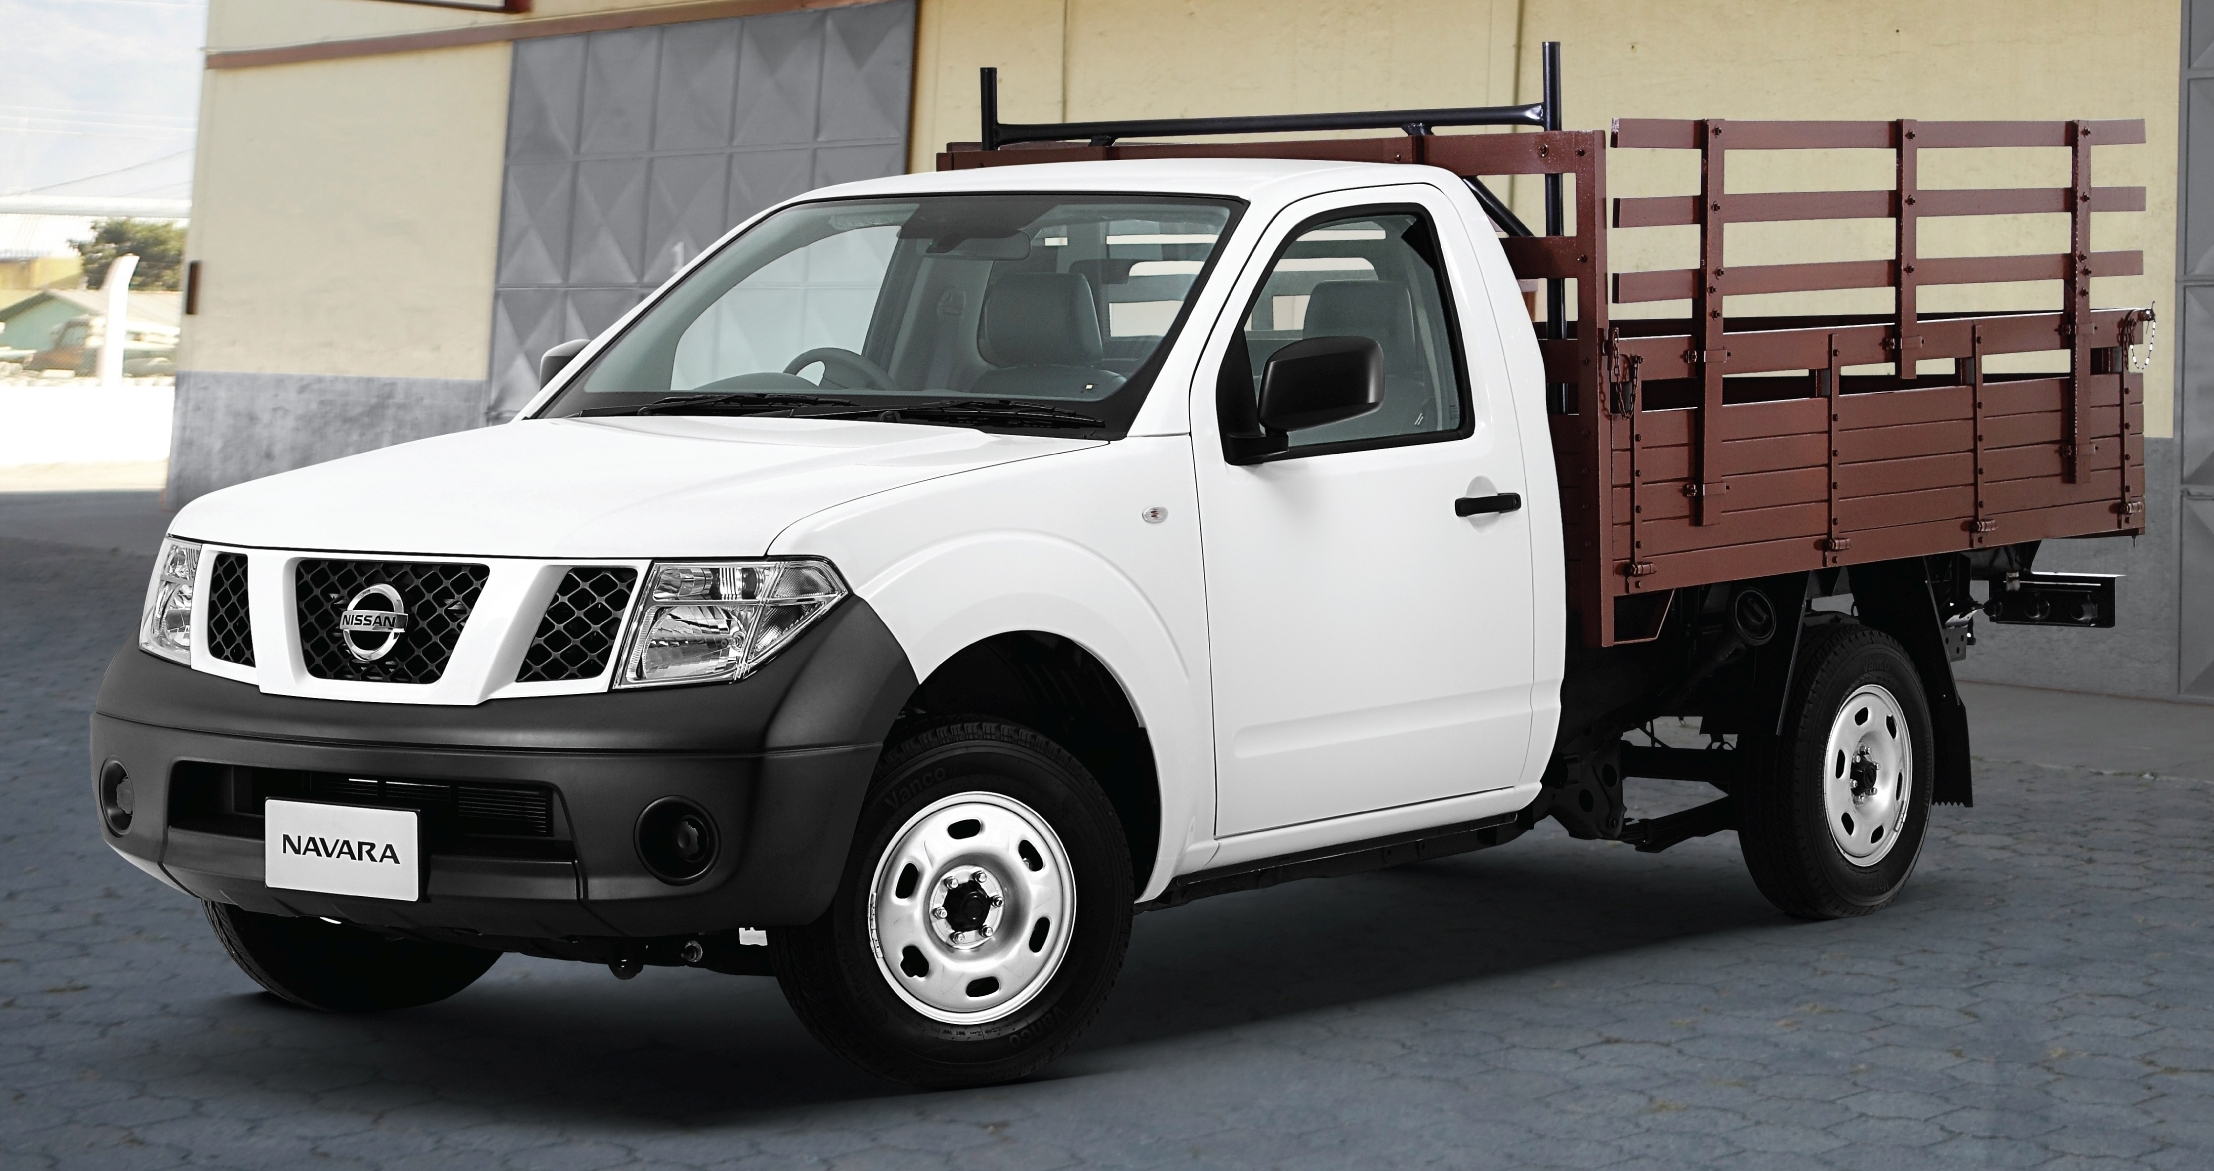 Nissan Navara Single Cab 4x2 - the workhorse arrives!